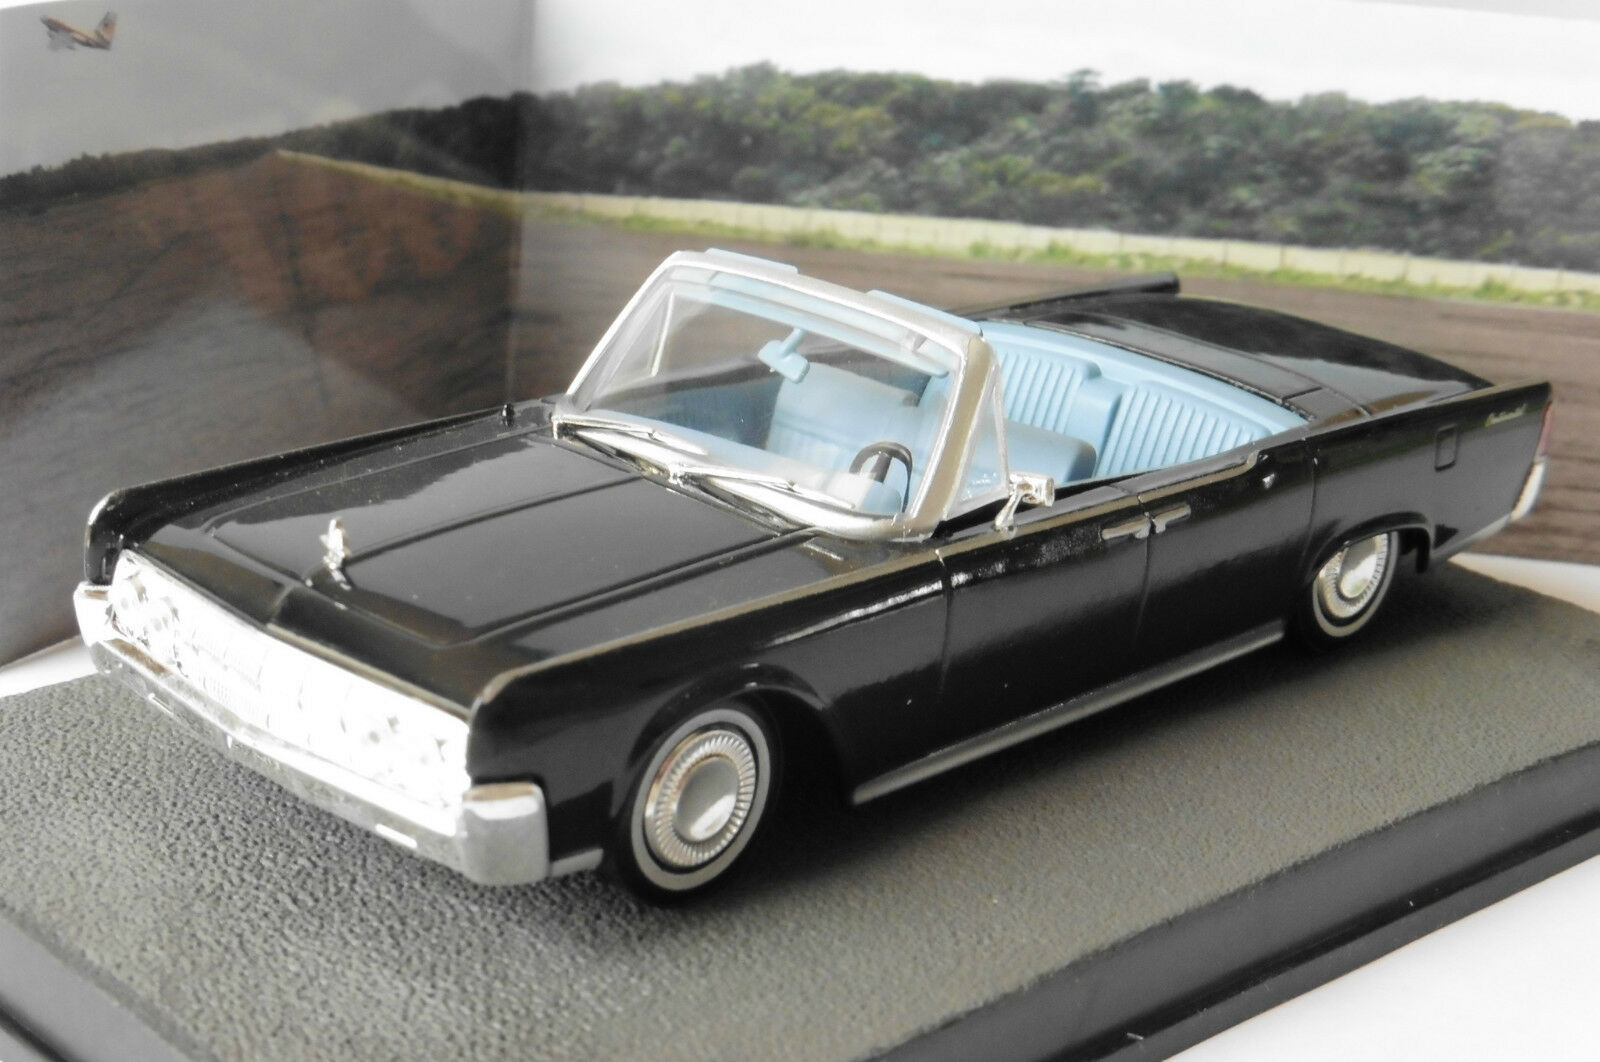 LINCOLN CONTINENTAL CONVERTIBLE orFINGER 1 43 JAMES BOND 007 UNIVERSAL HOBBIES